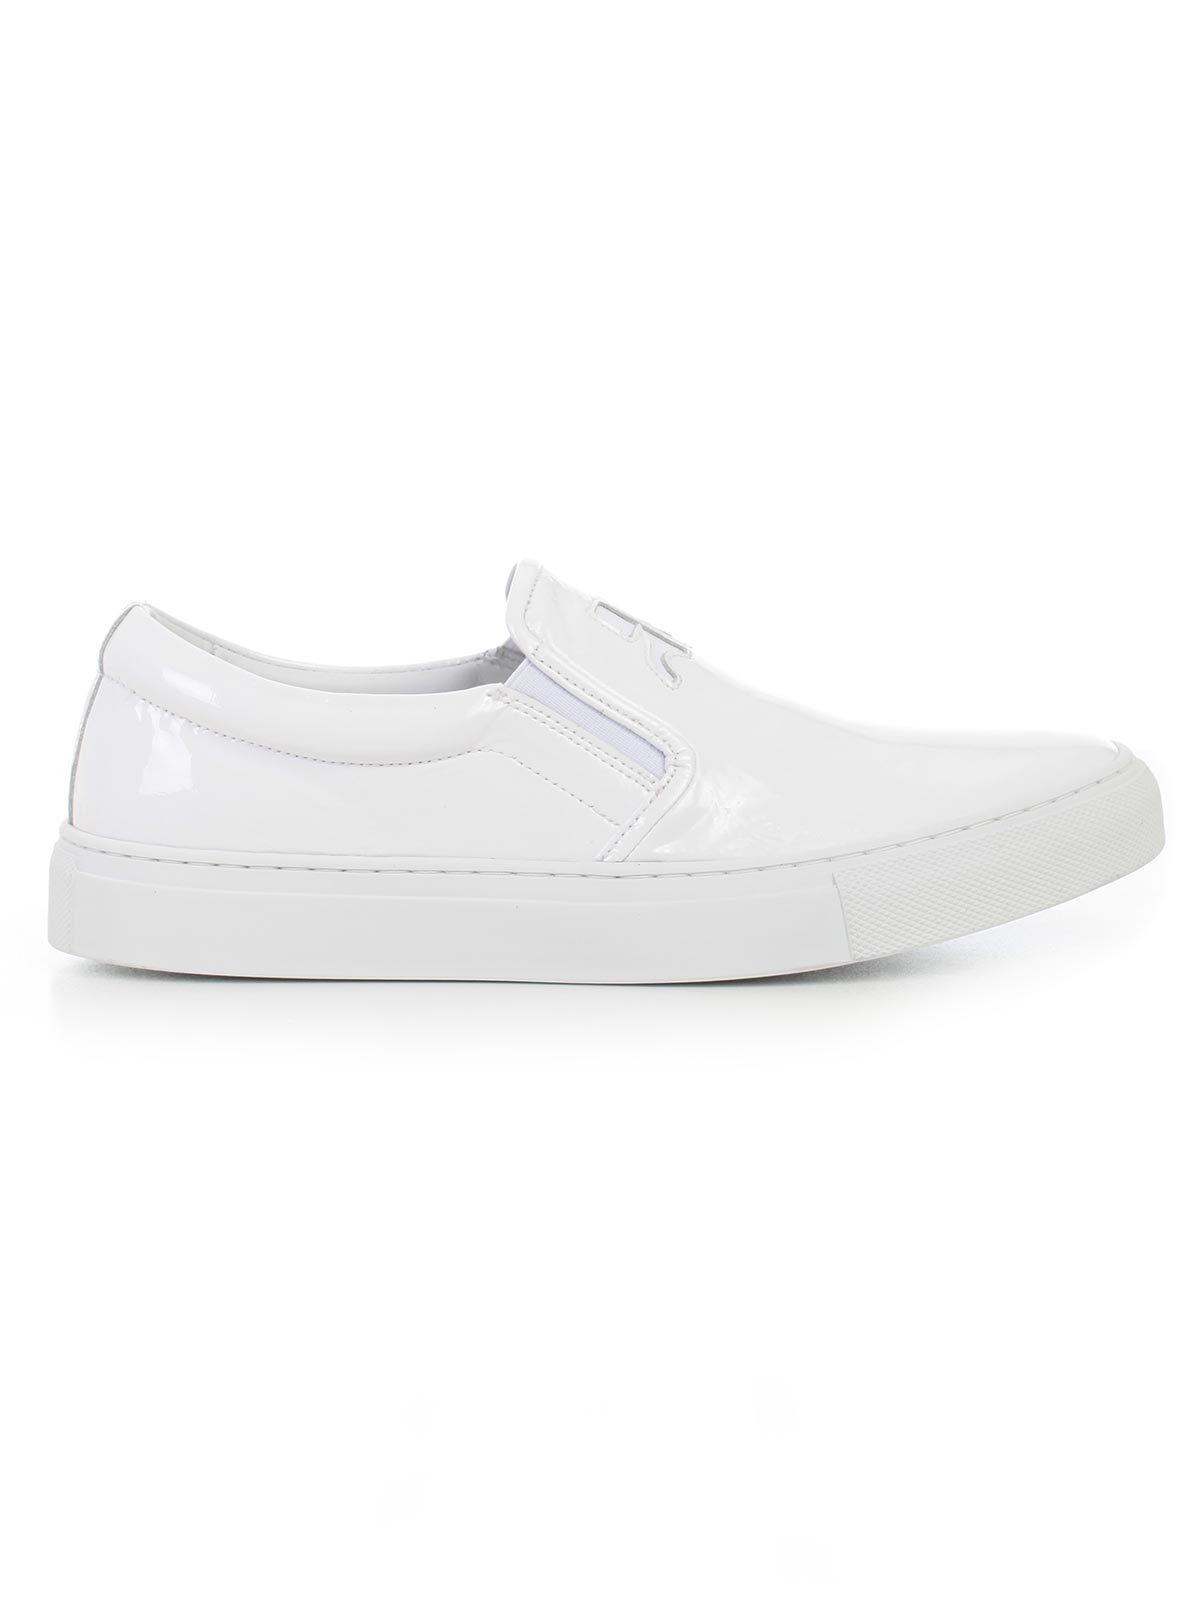 Picture of COURREGES FOOTWEAR